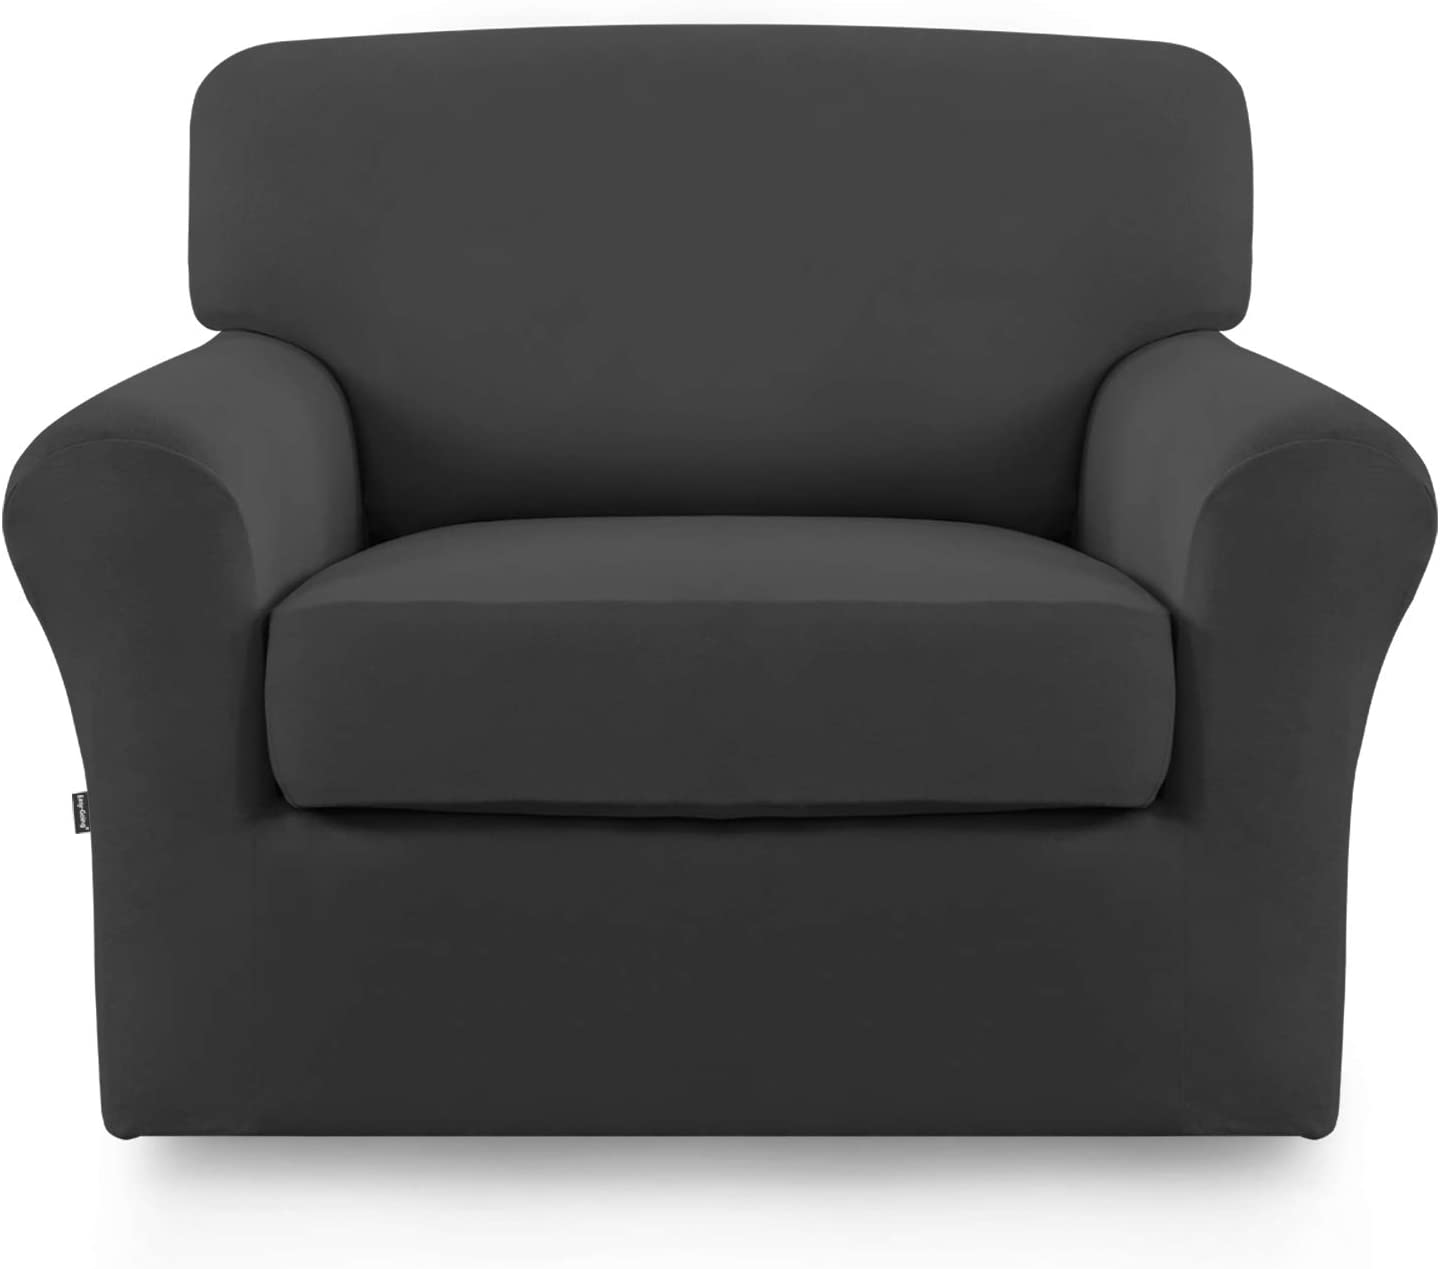 Stretch Sofa Slipcover,2-Piece Sofa Cover Furniture Protector Couch Micro Fiber Super Soft Sturdy with Elastic Bottom Pets,Kids,Children,Dog,Cat(Chair,Dark Gray)